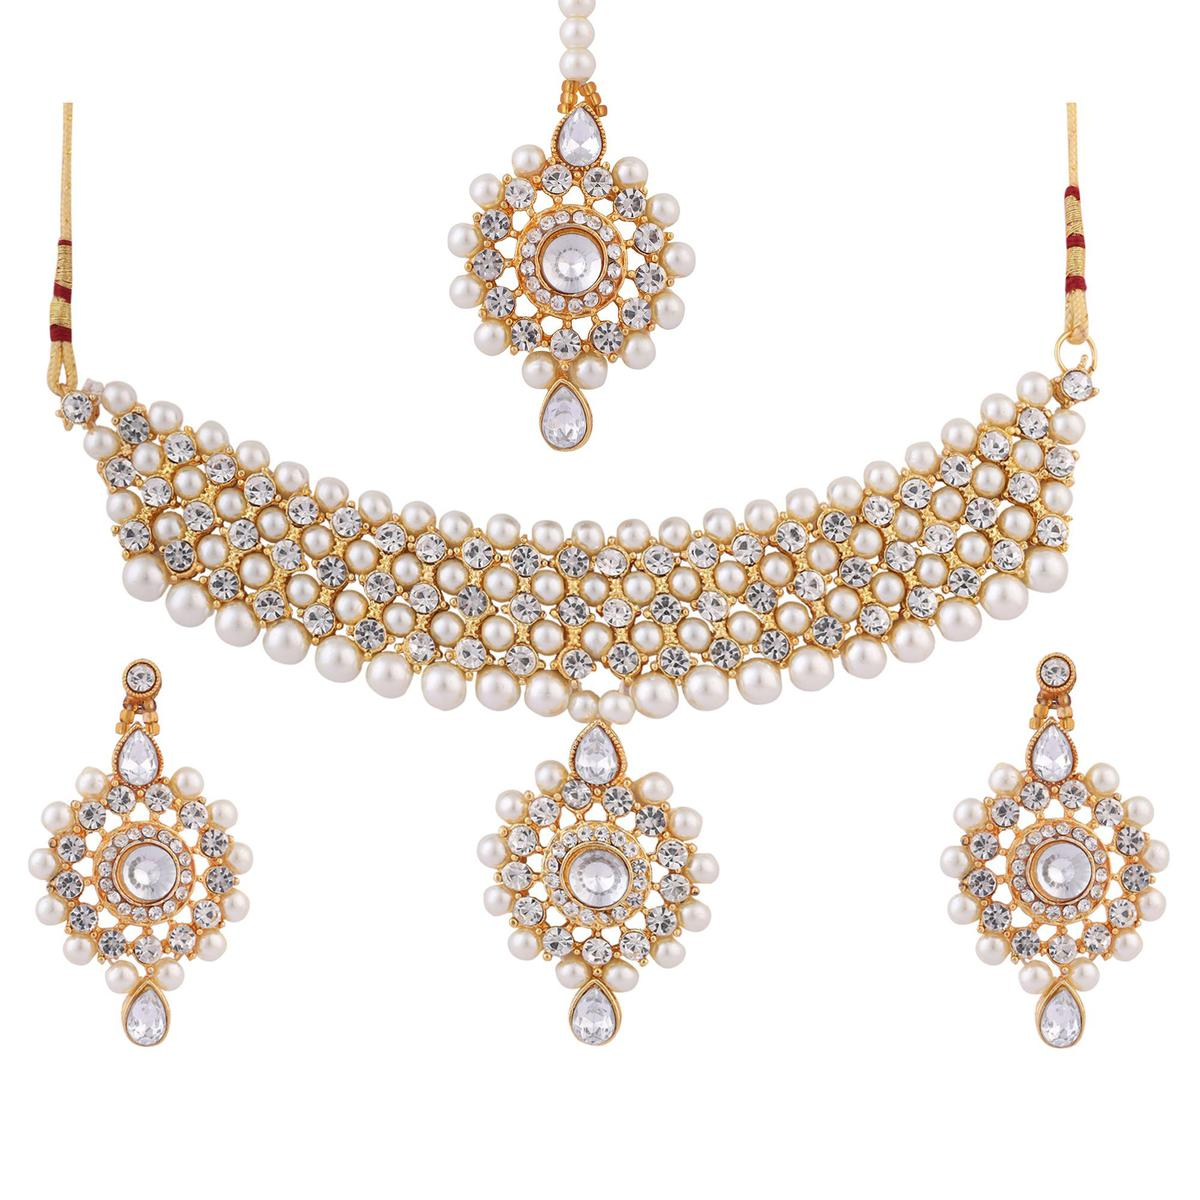 ZaffreCollections - Twinkle Elegant Party Wear White Jewellery Set with Maang Tikka for Women and Girls